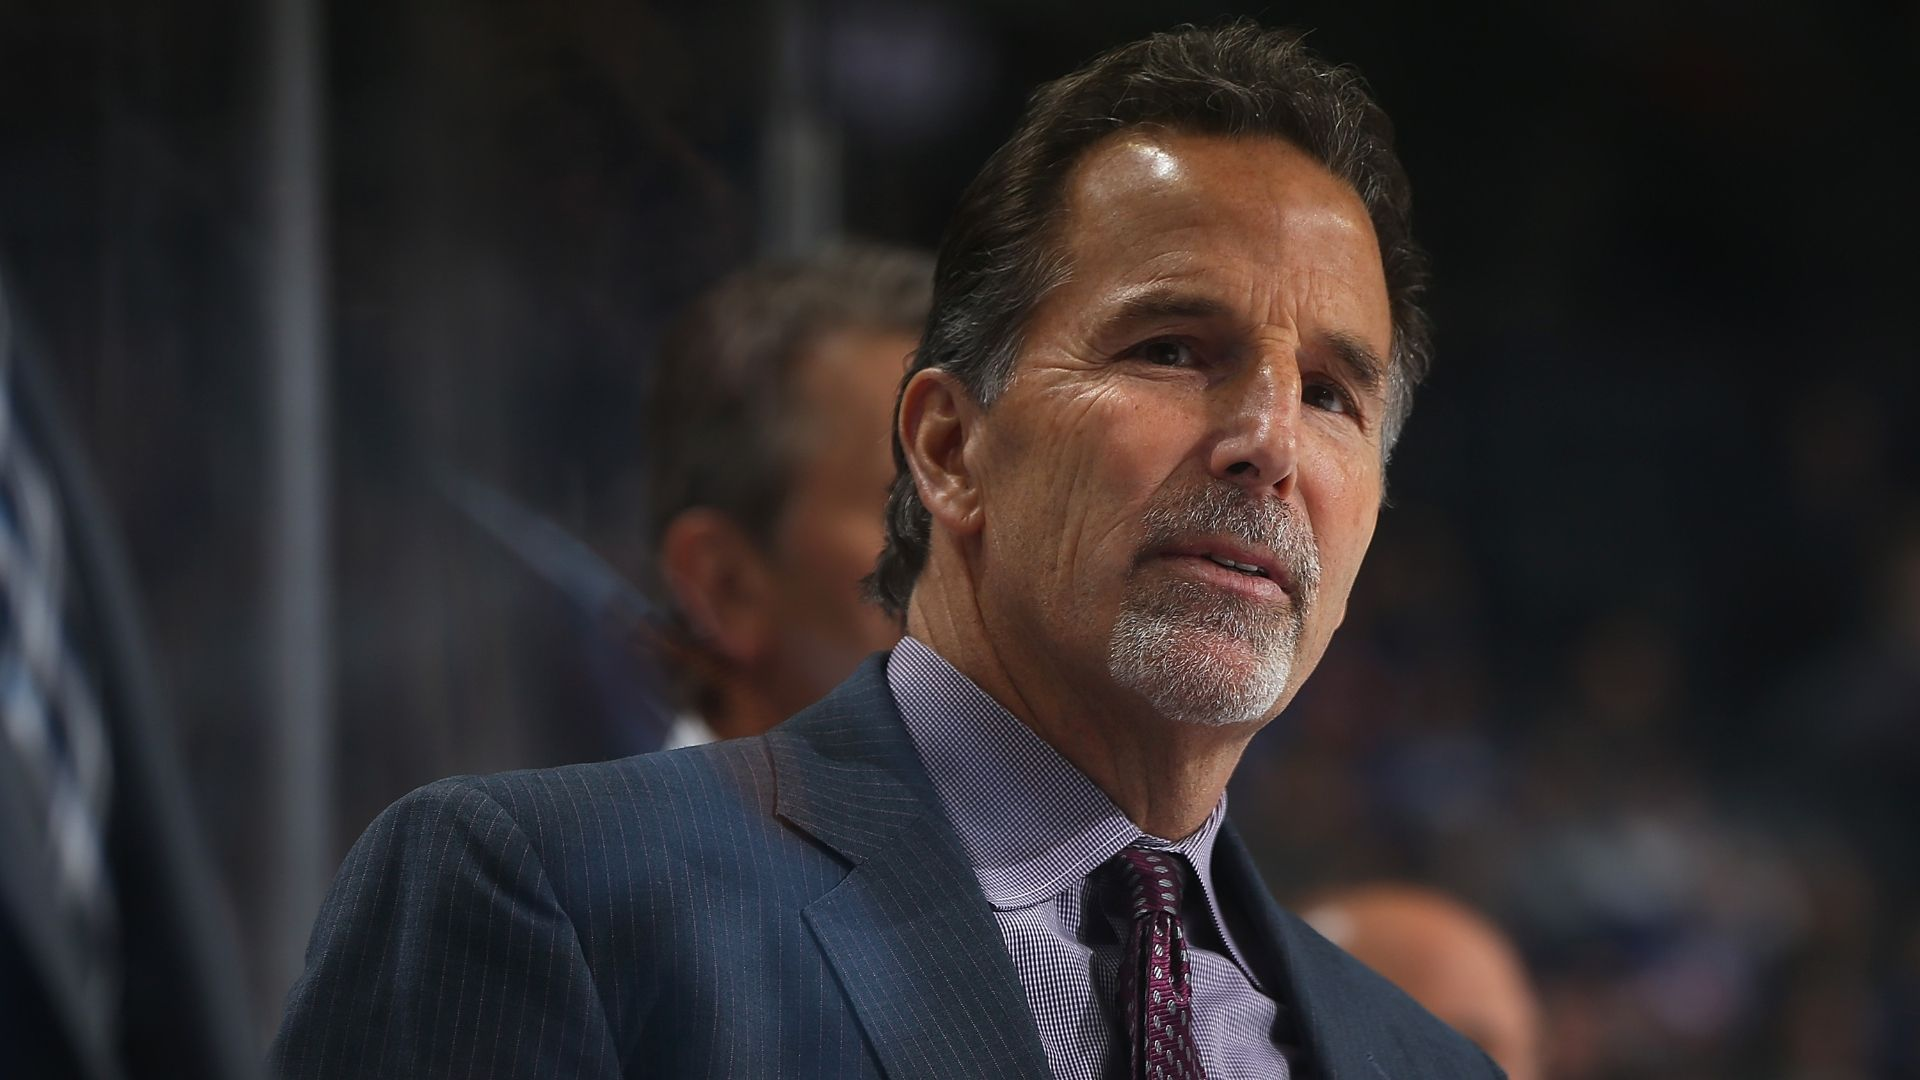 Tortorella says he'll bench any player that sits during national anthem